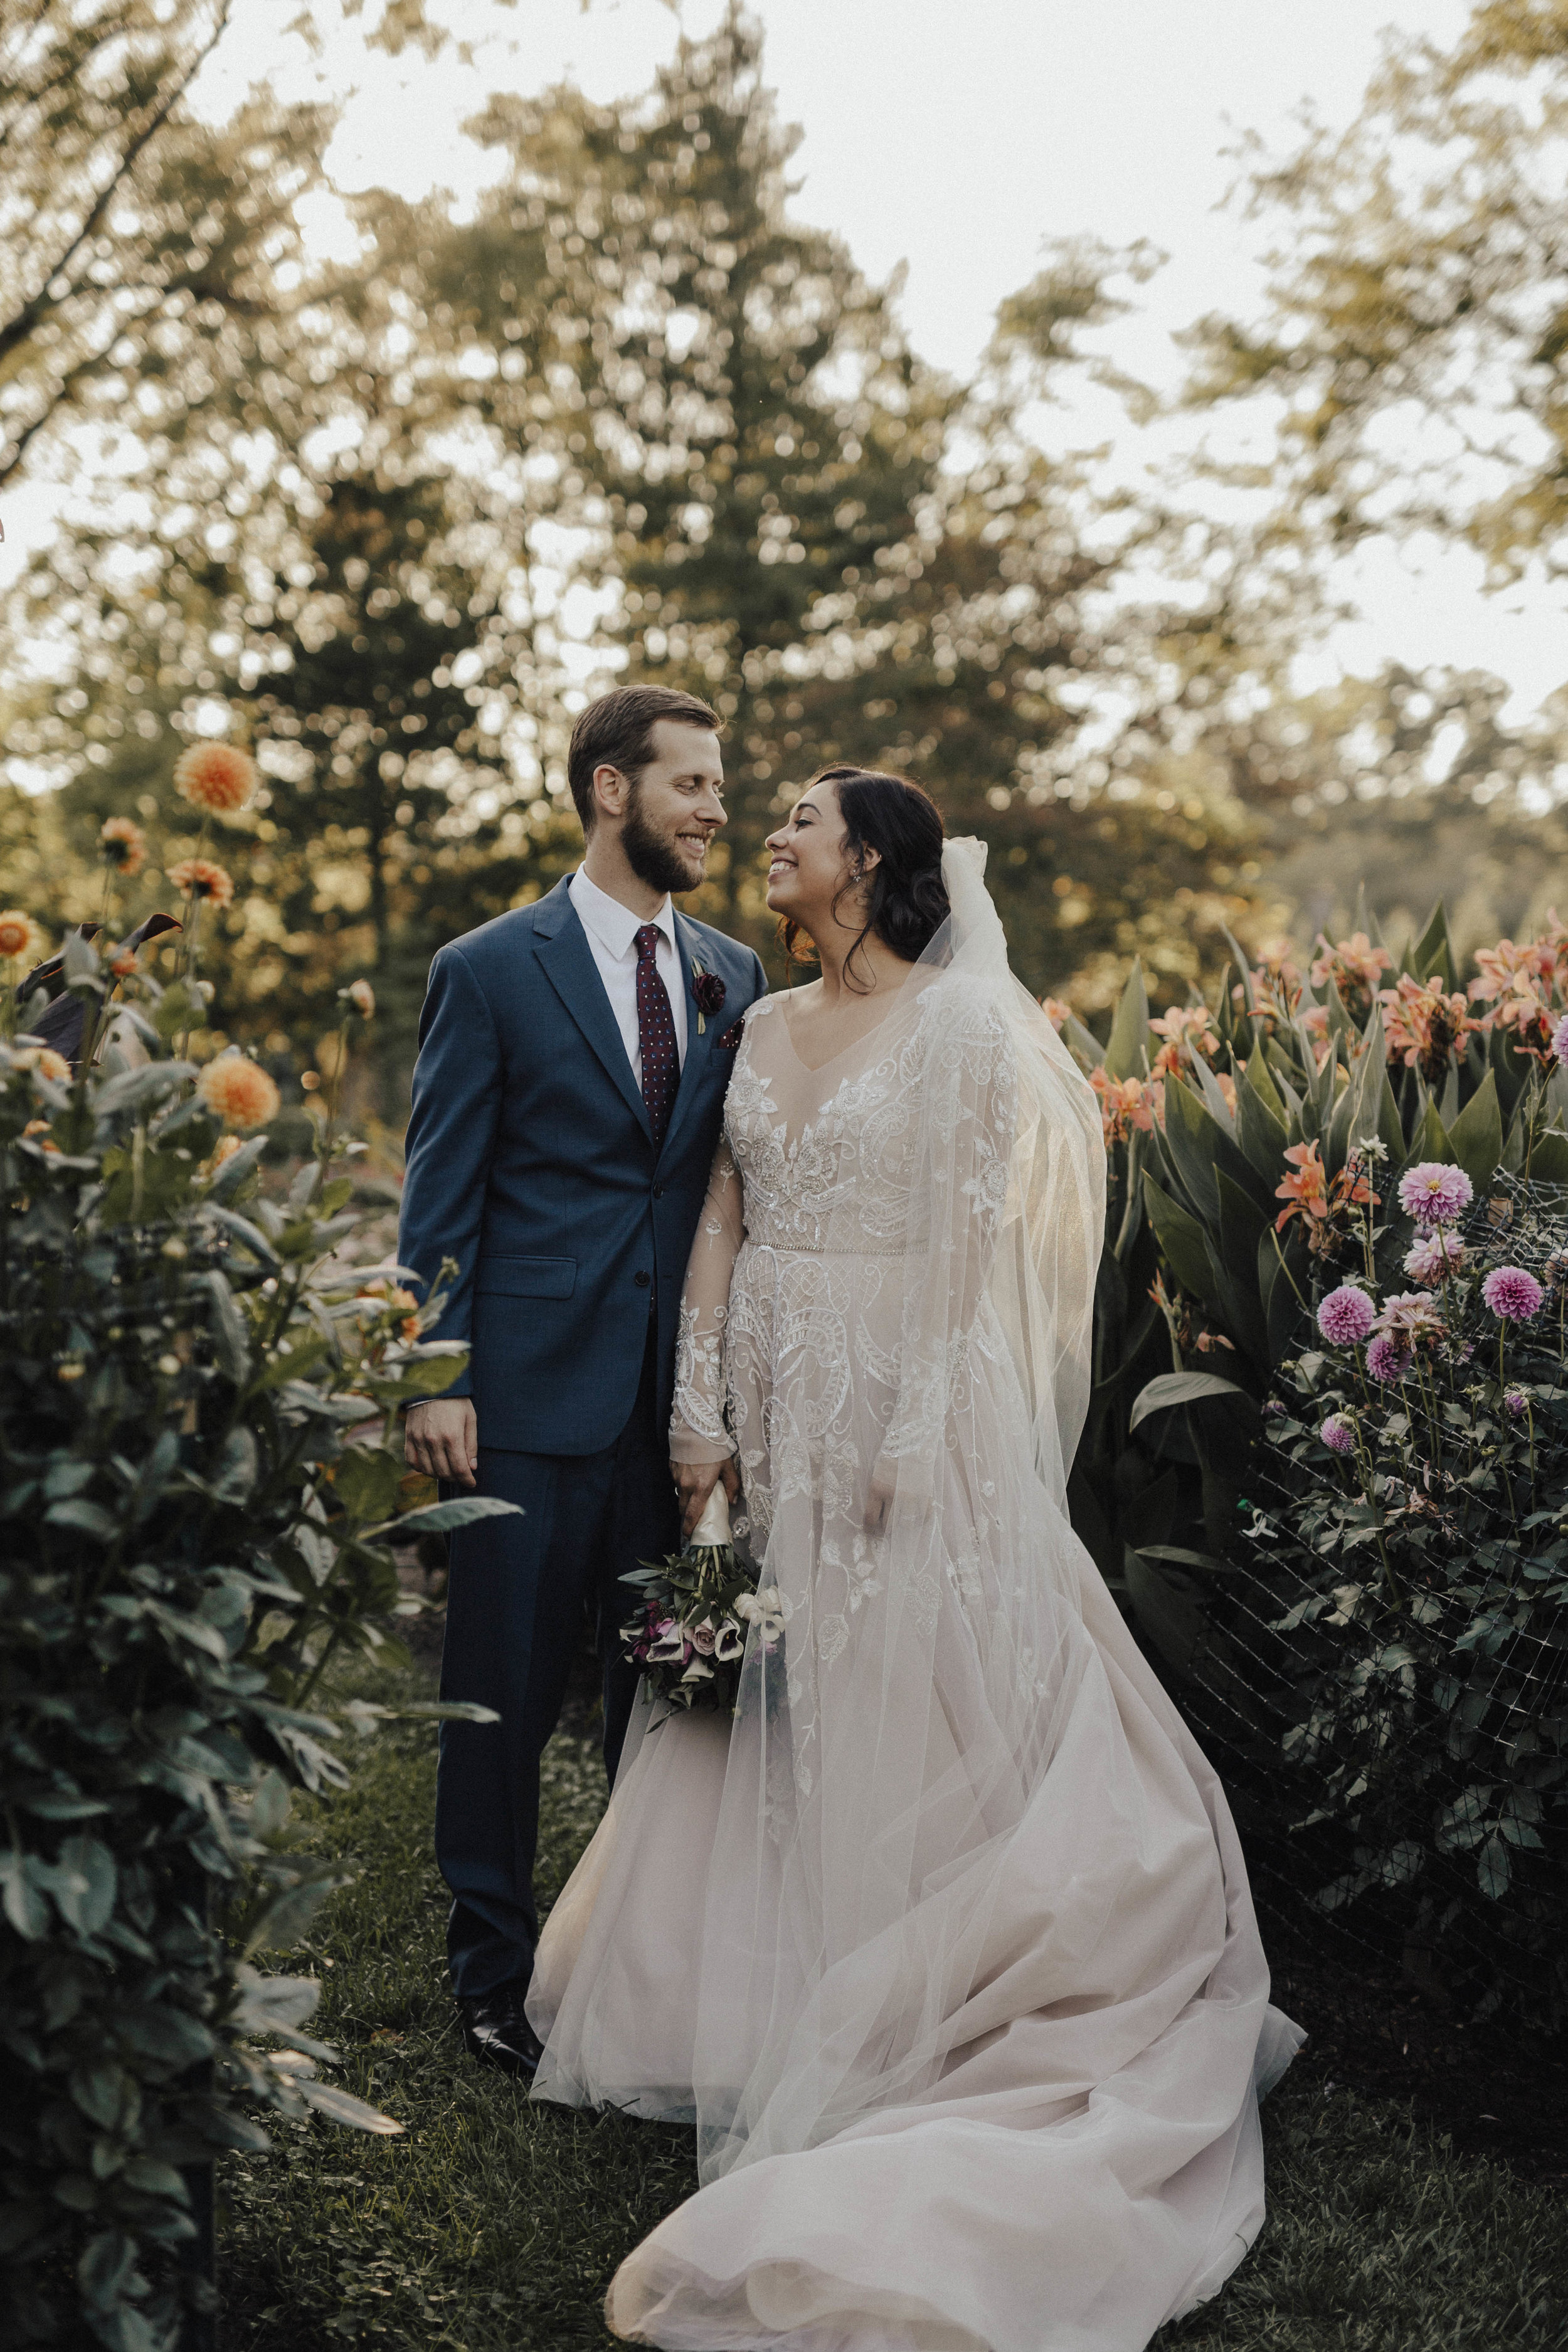 The Cylburn Arboretum  - gorgeous inside and out! Clyburn's grounds are well kept and make a wonderful location for outdoor ceremonies + receptions. The getting ready space is beautiful too!